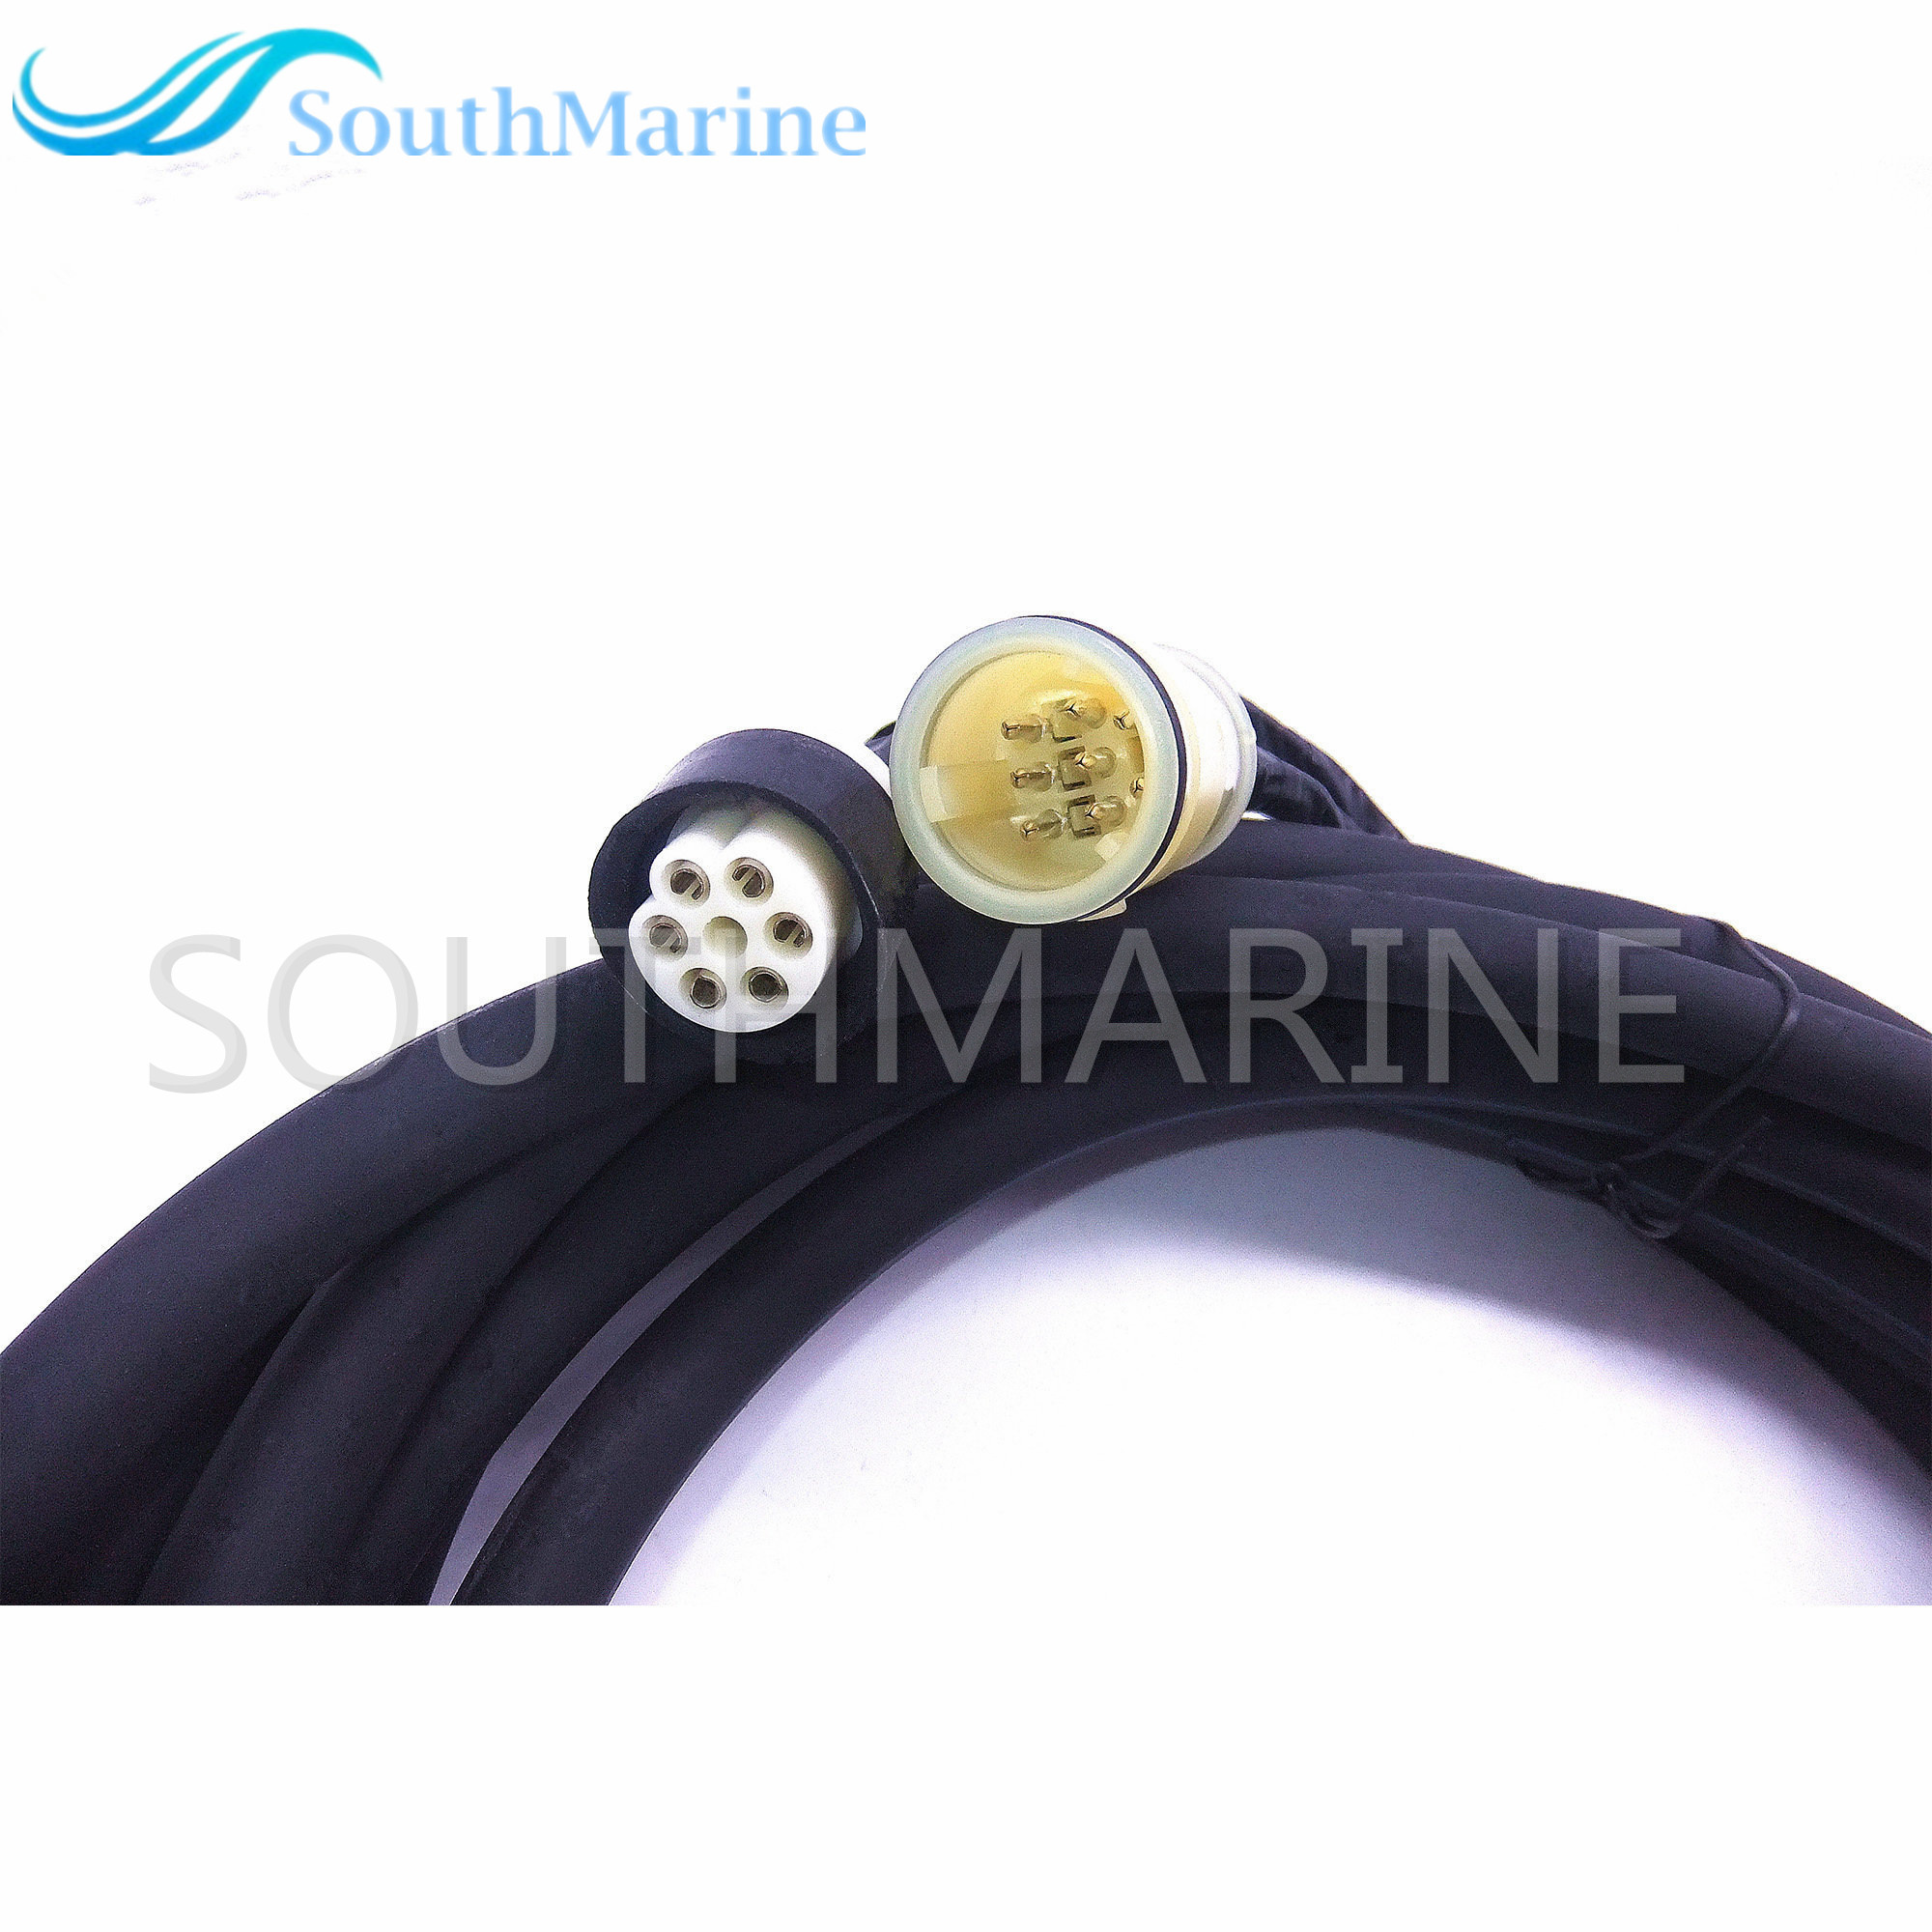 61a 8258a 00 6k1 40 26ft Main Wiring Harness 10p For Yamaha Outboard Motor 704 Remote Control 8m